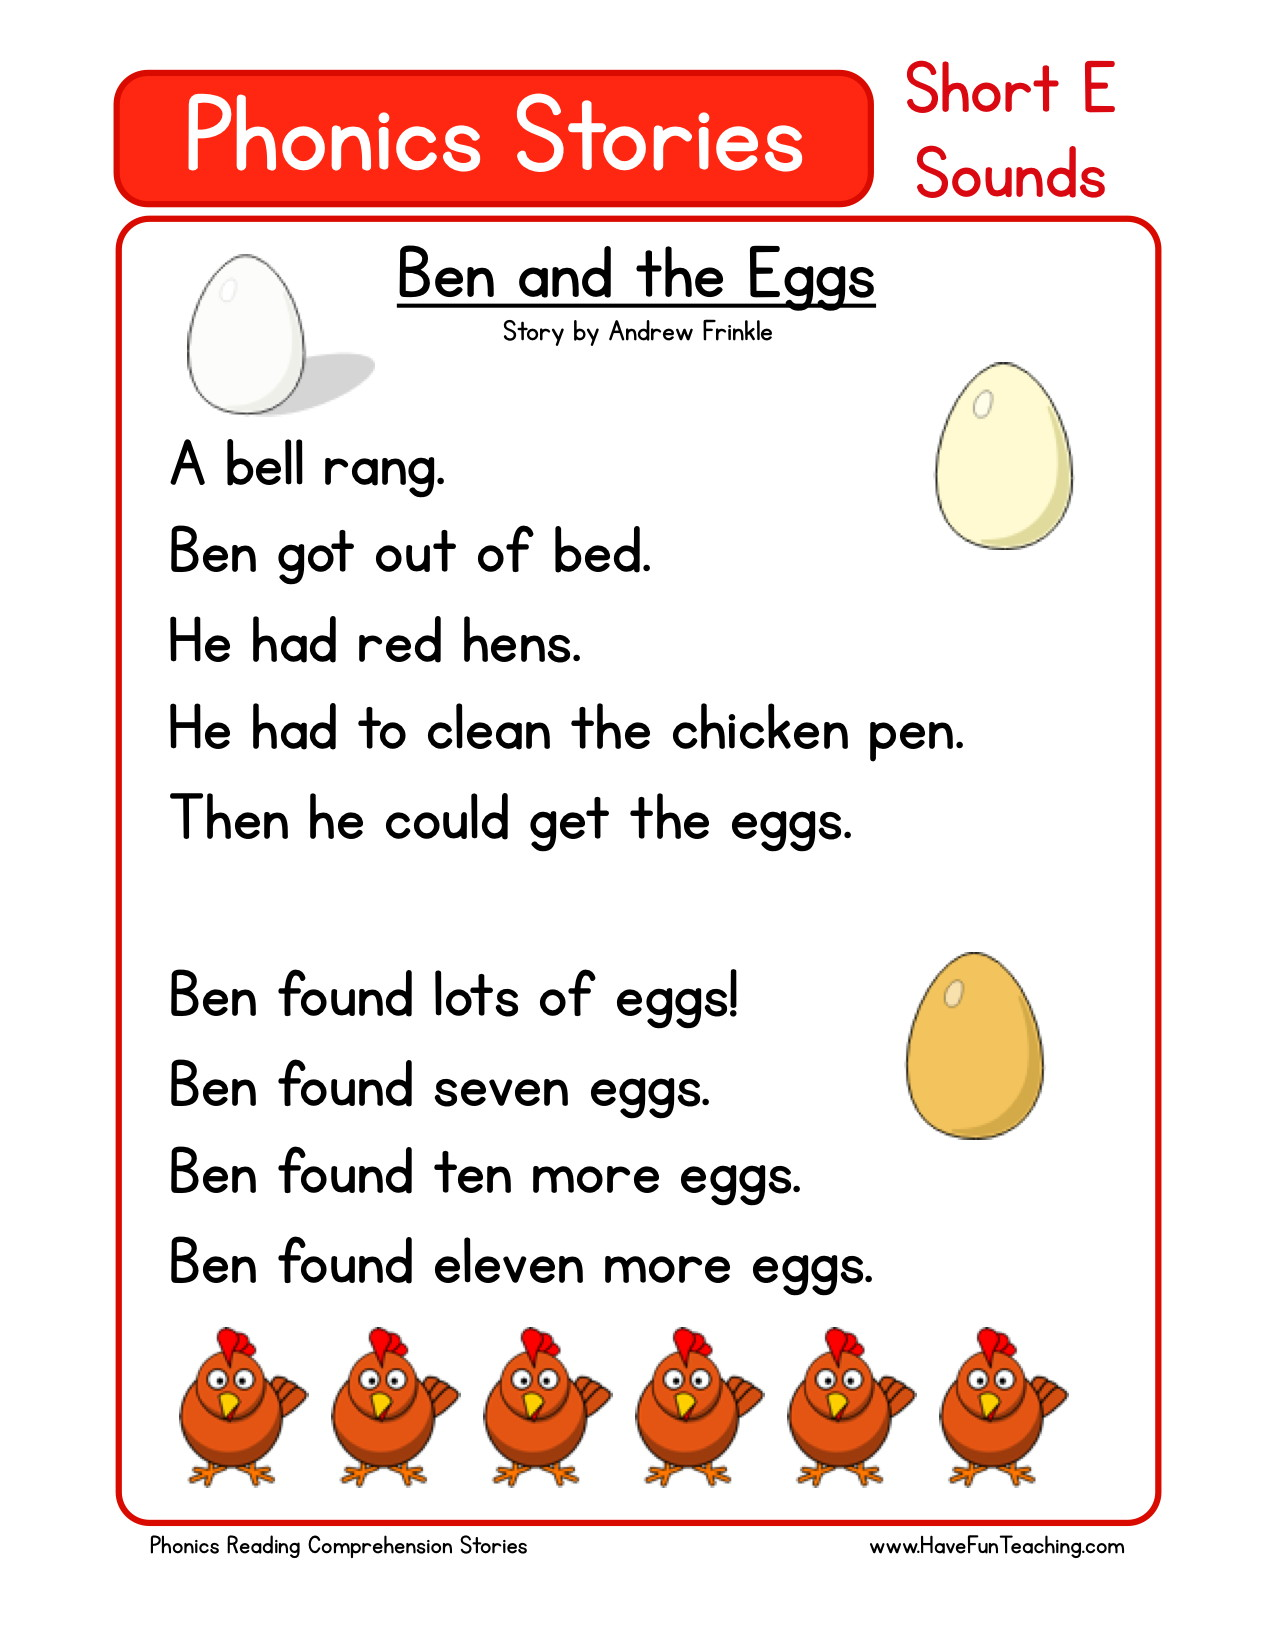 Ben and the Eggs